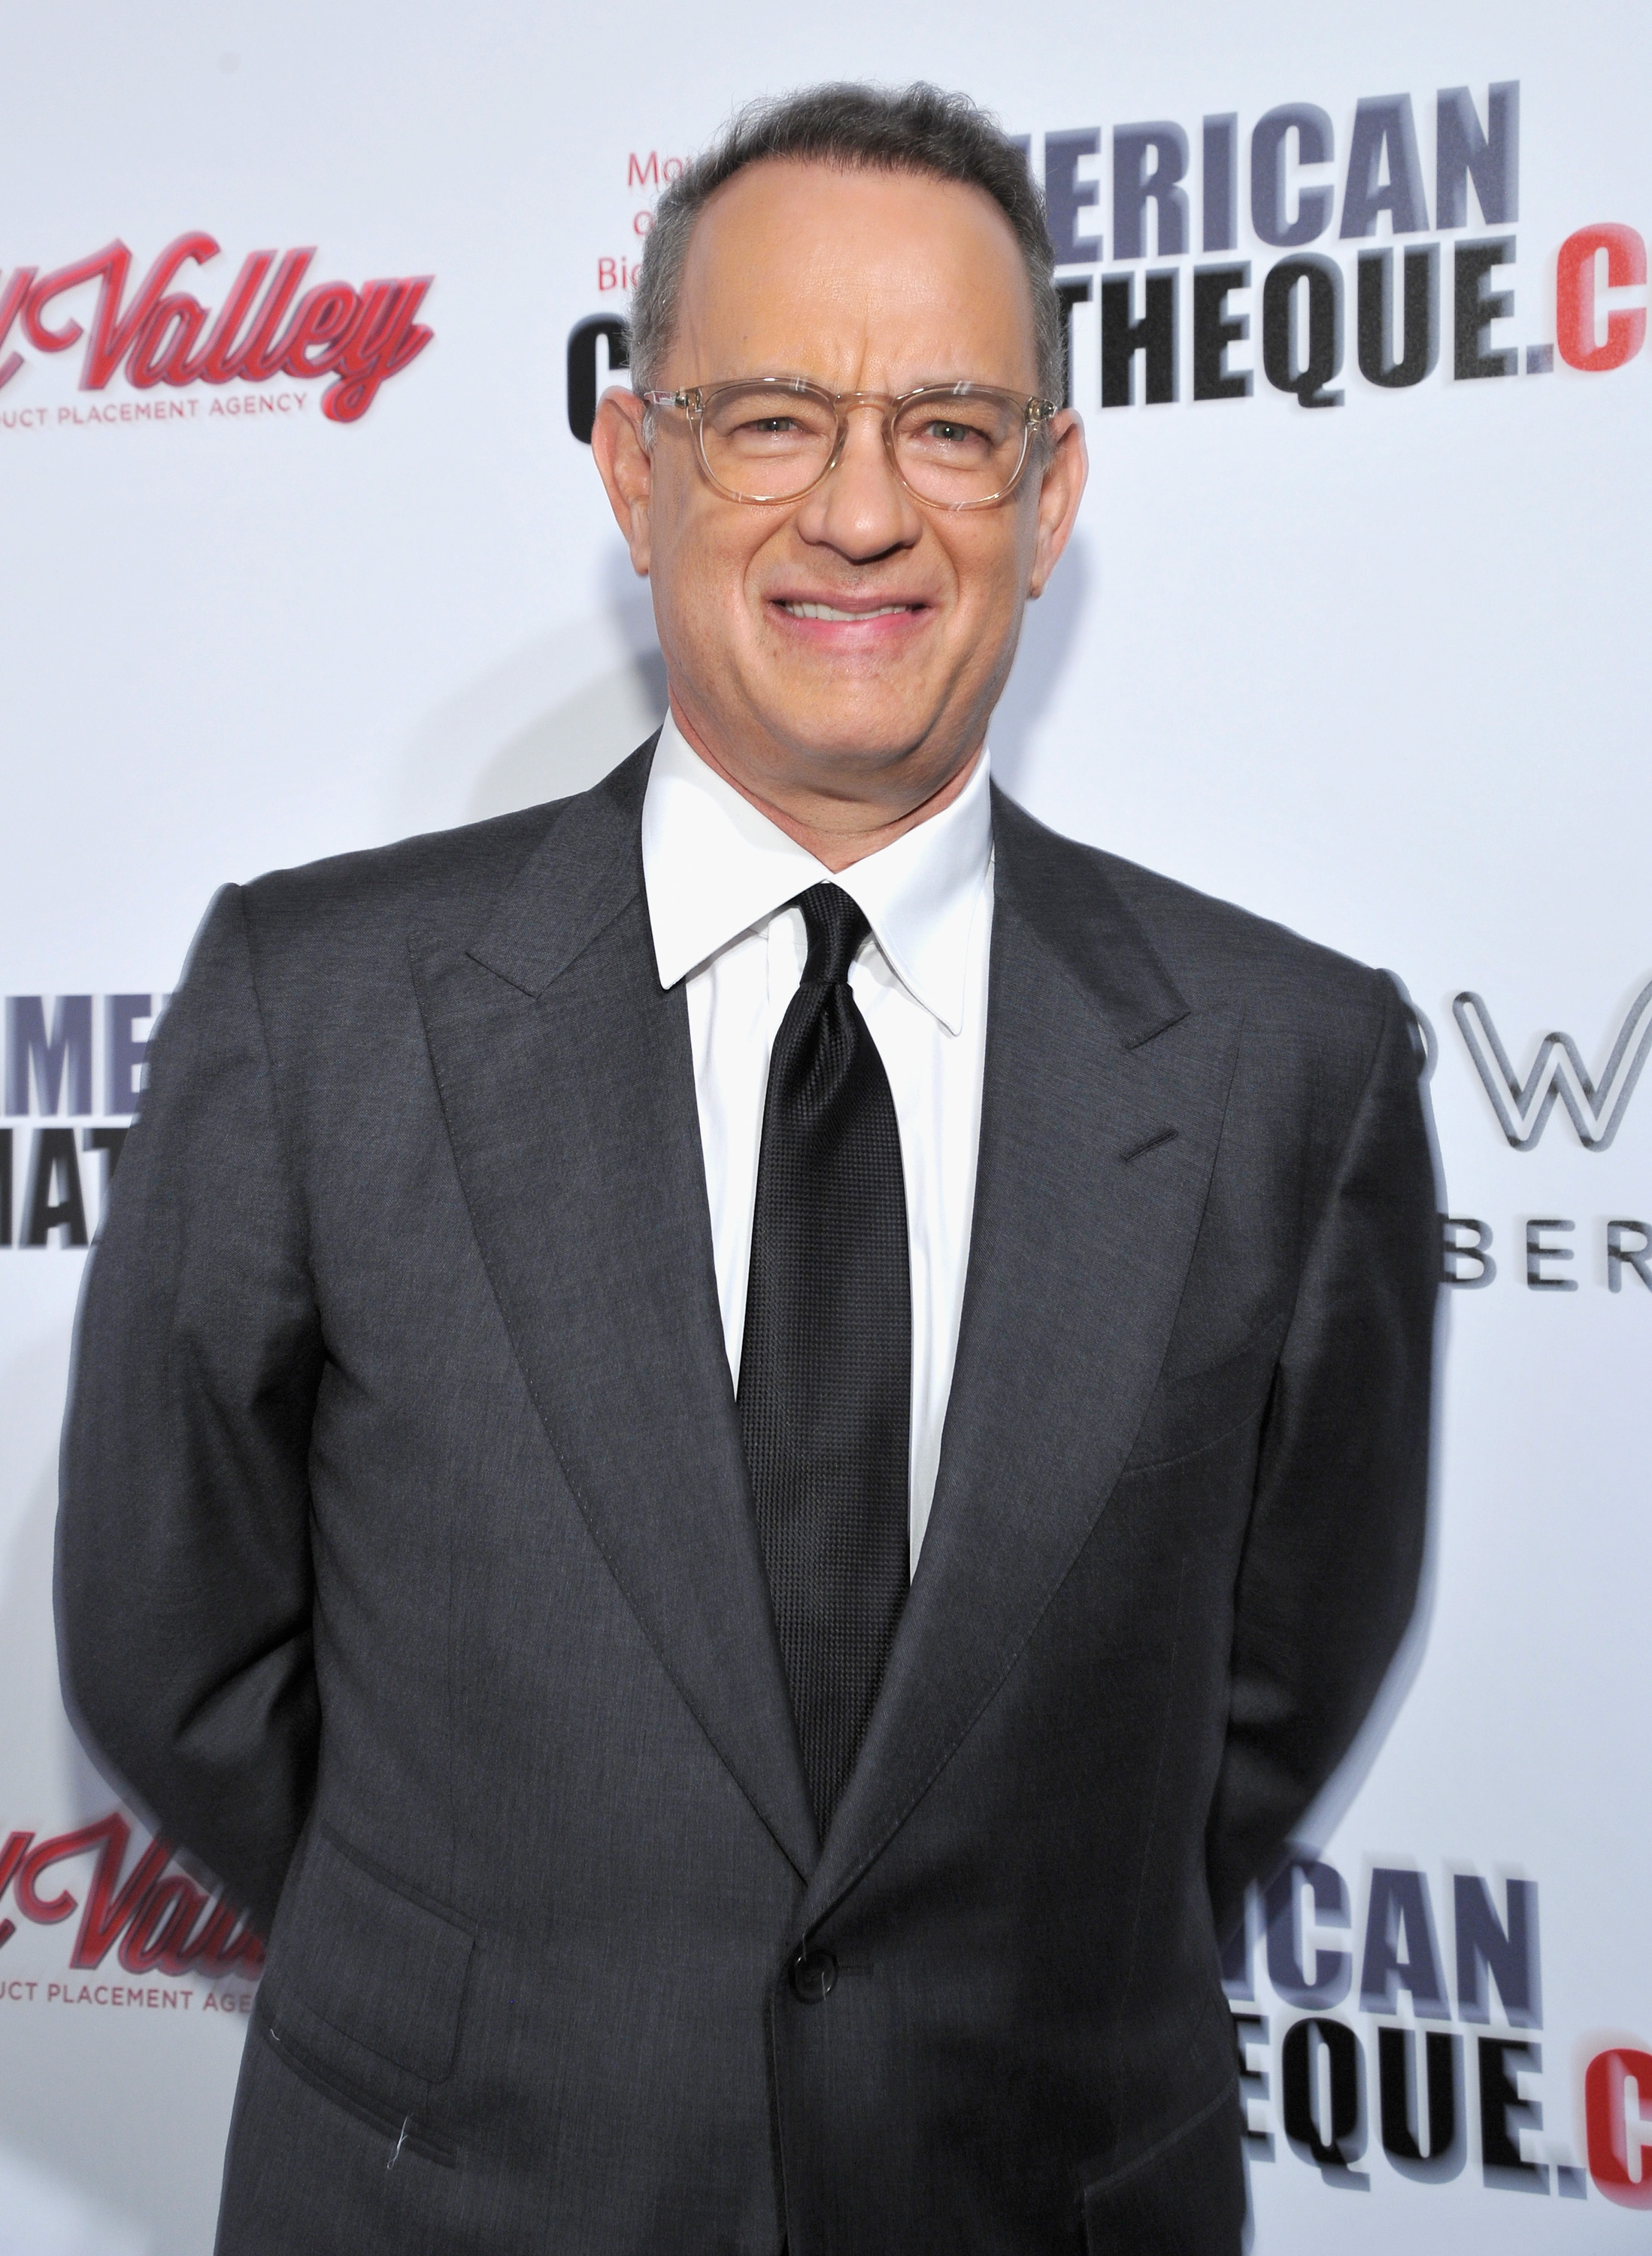 Tom Hanks attends the 31st American Cinematheque Award Presentation Honoring Amy Adams Presented by GRoW @ Annenberg. Presentation of The 3rd Annual Sid Grauman Award Sponsored by Hill Valley, presented to Richard Gelfond and Greg Foster on behalf of IMAX at The Beverly Hilton Hotel on November 10, 2017 in Beverly Hills, California.